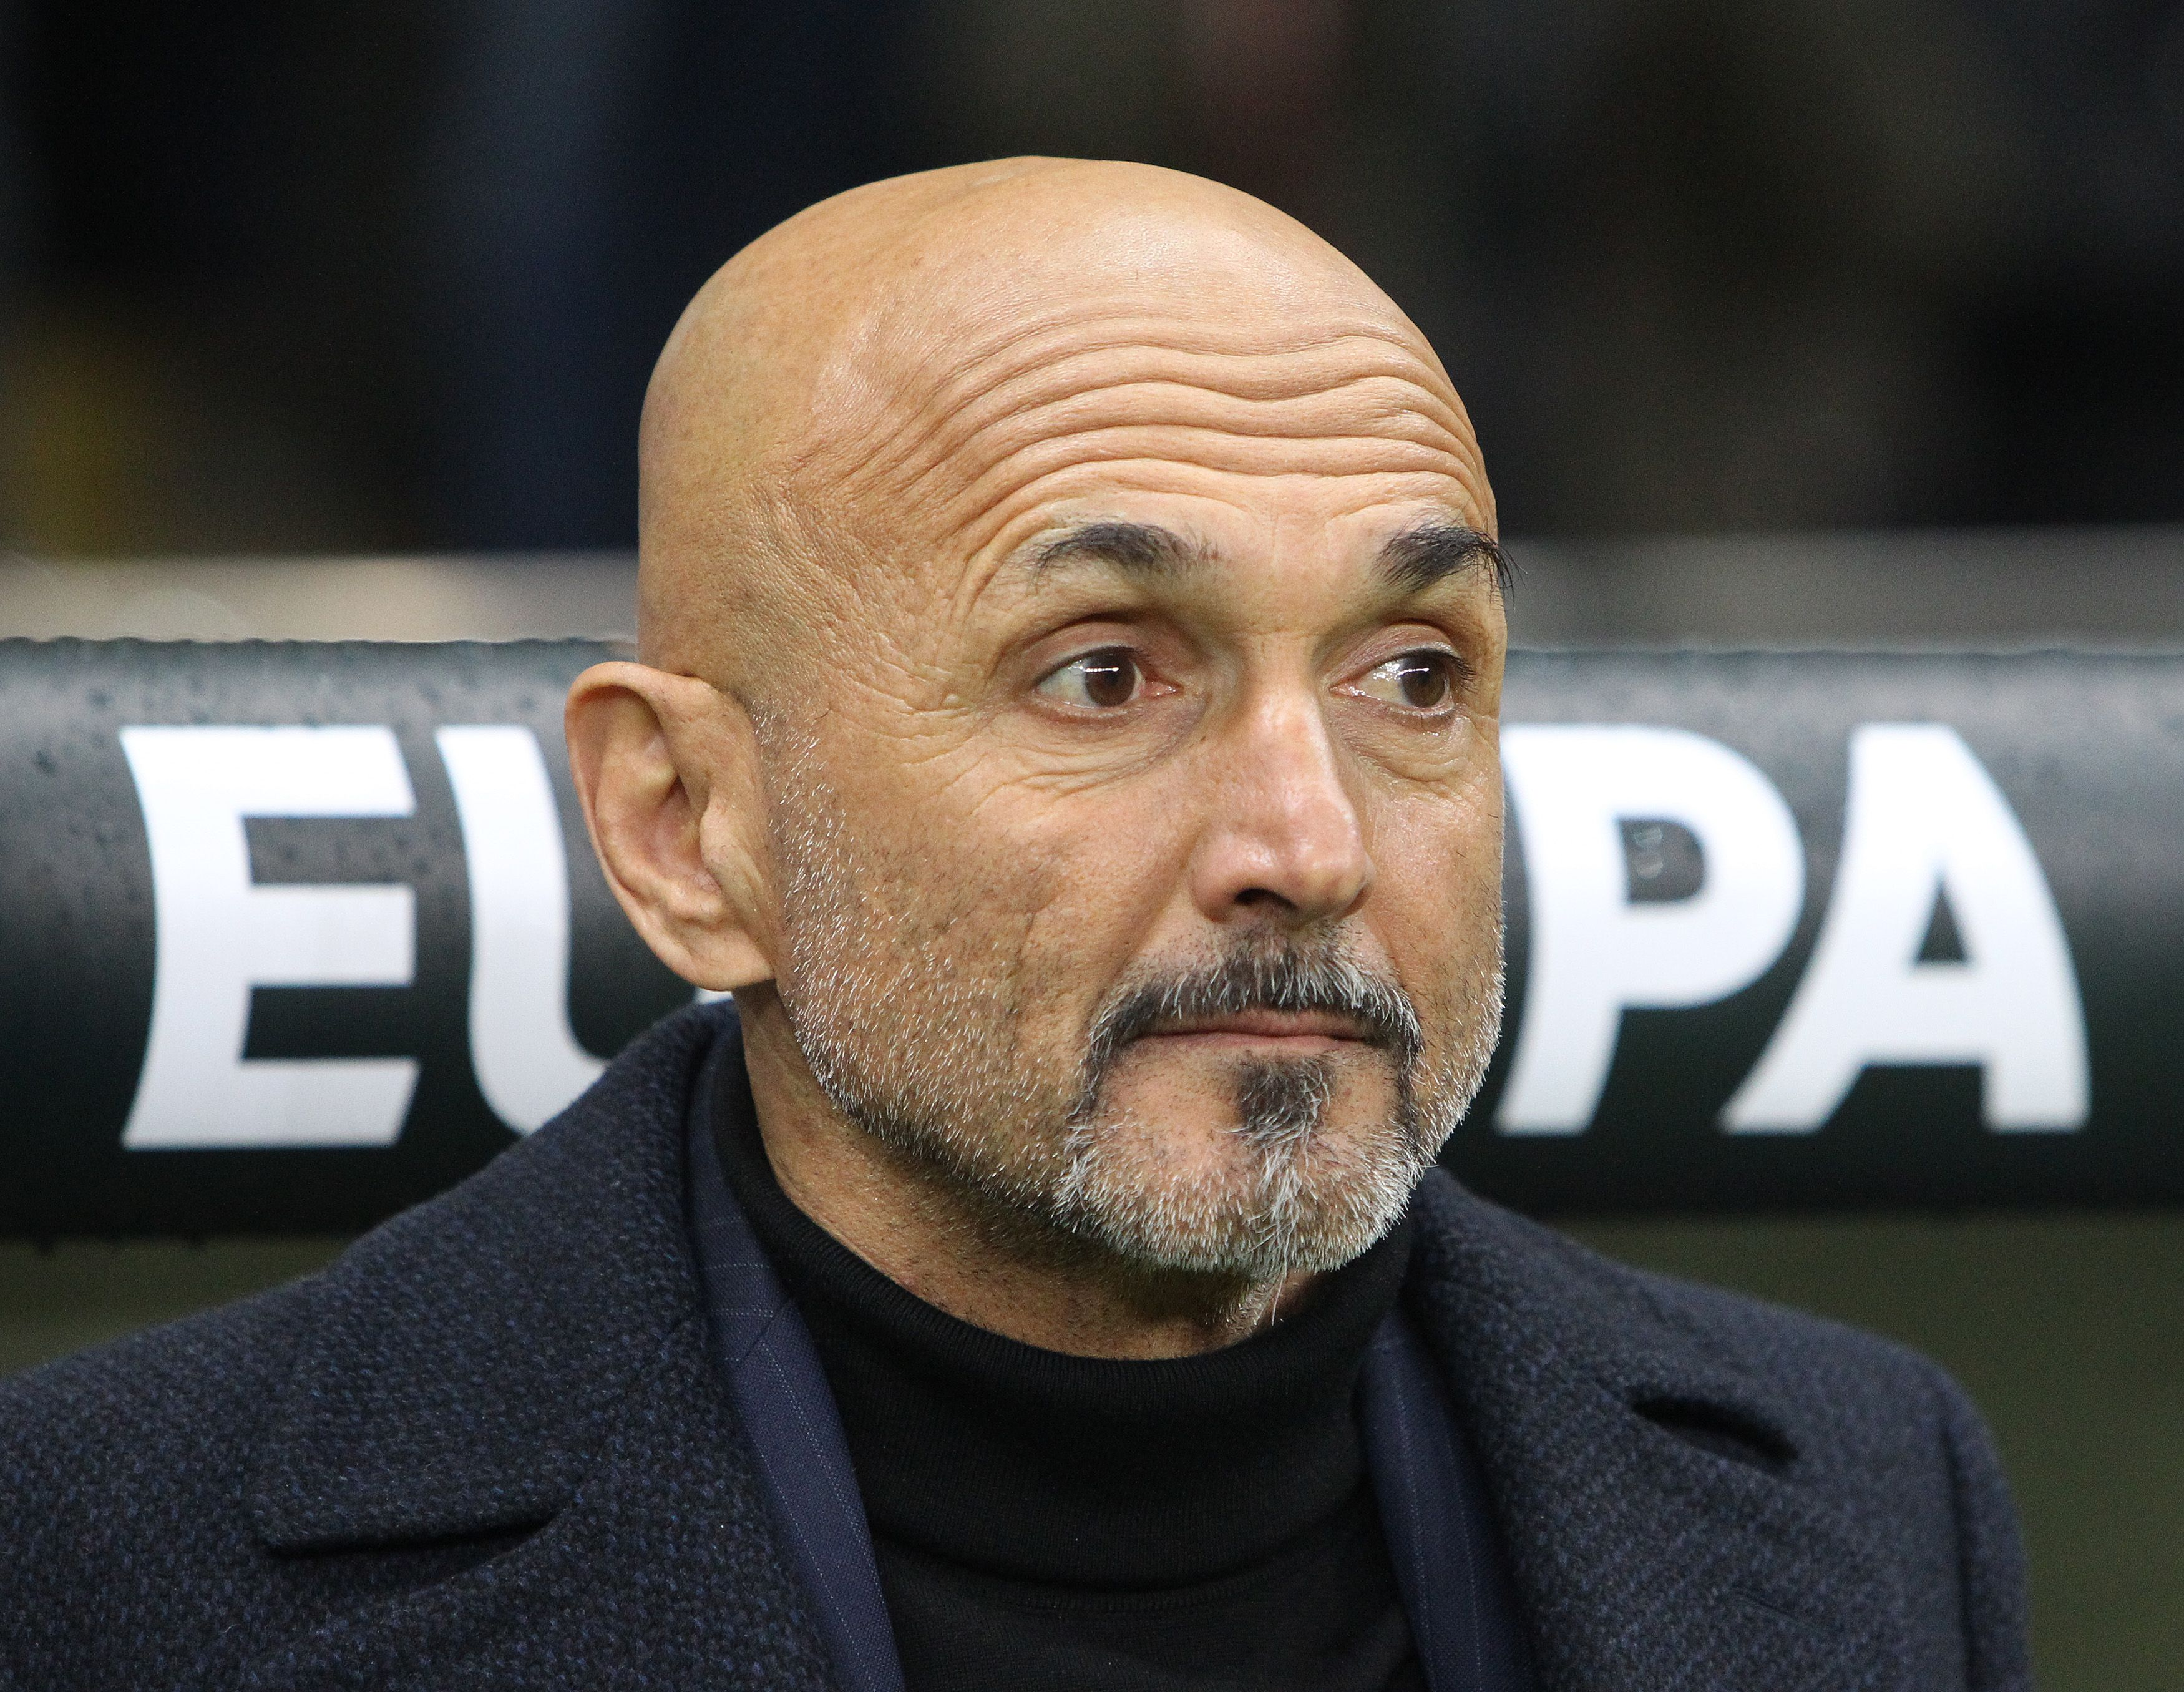 Inter Milan's head coach Luciano Spalletti is pictured prior to the UEFA Europa League round of 16  1st leg football match Frankfurt v Inter Milan in Frankfurt, western Germany on March 7, 2019. (Photo by Daniel ROLAND / AFP)